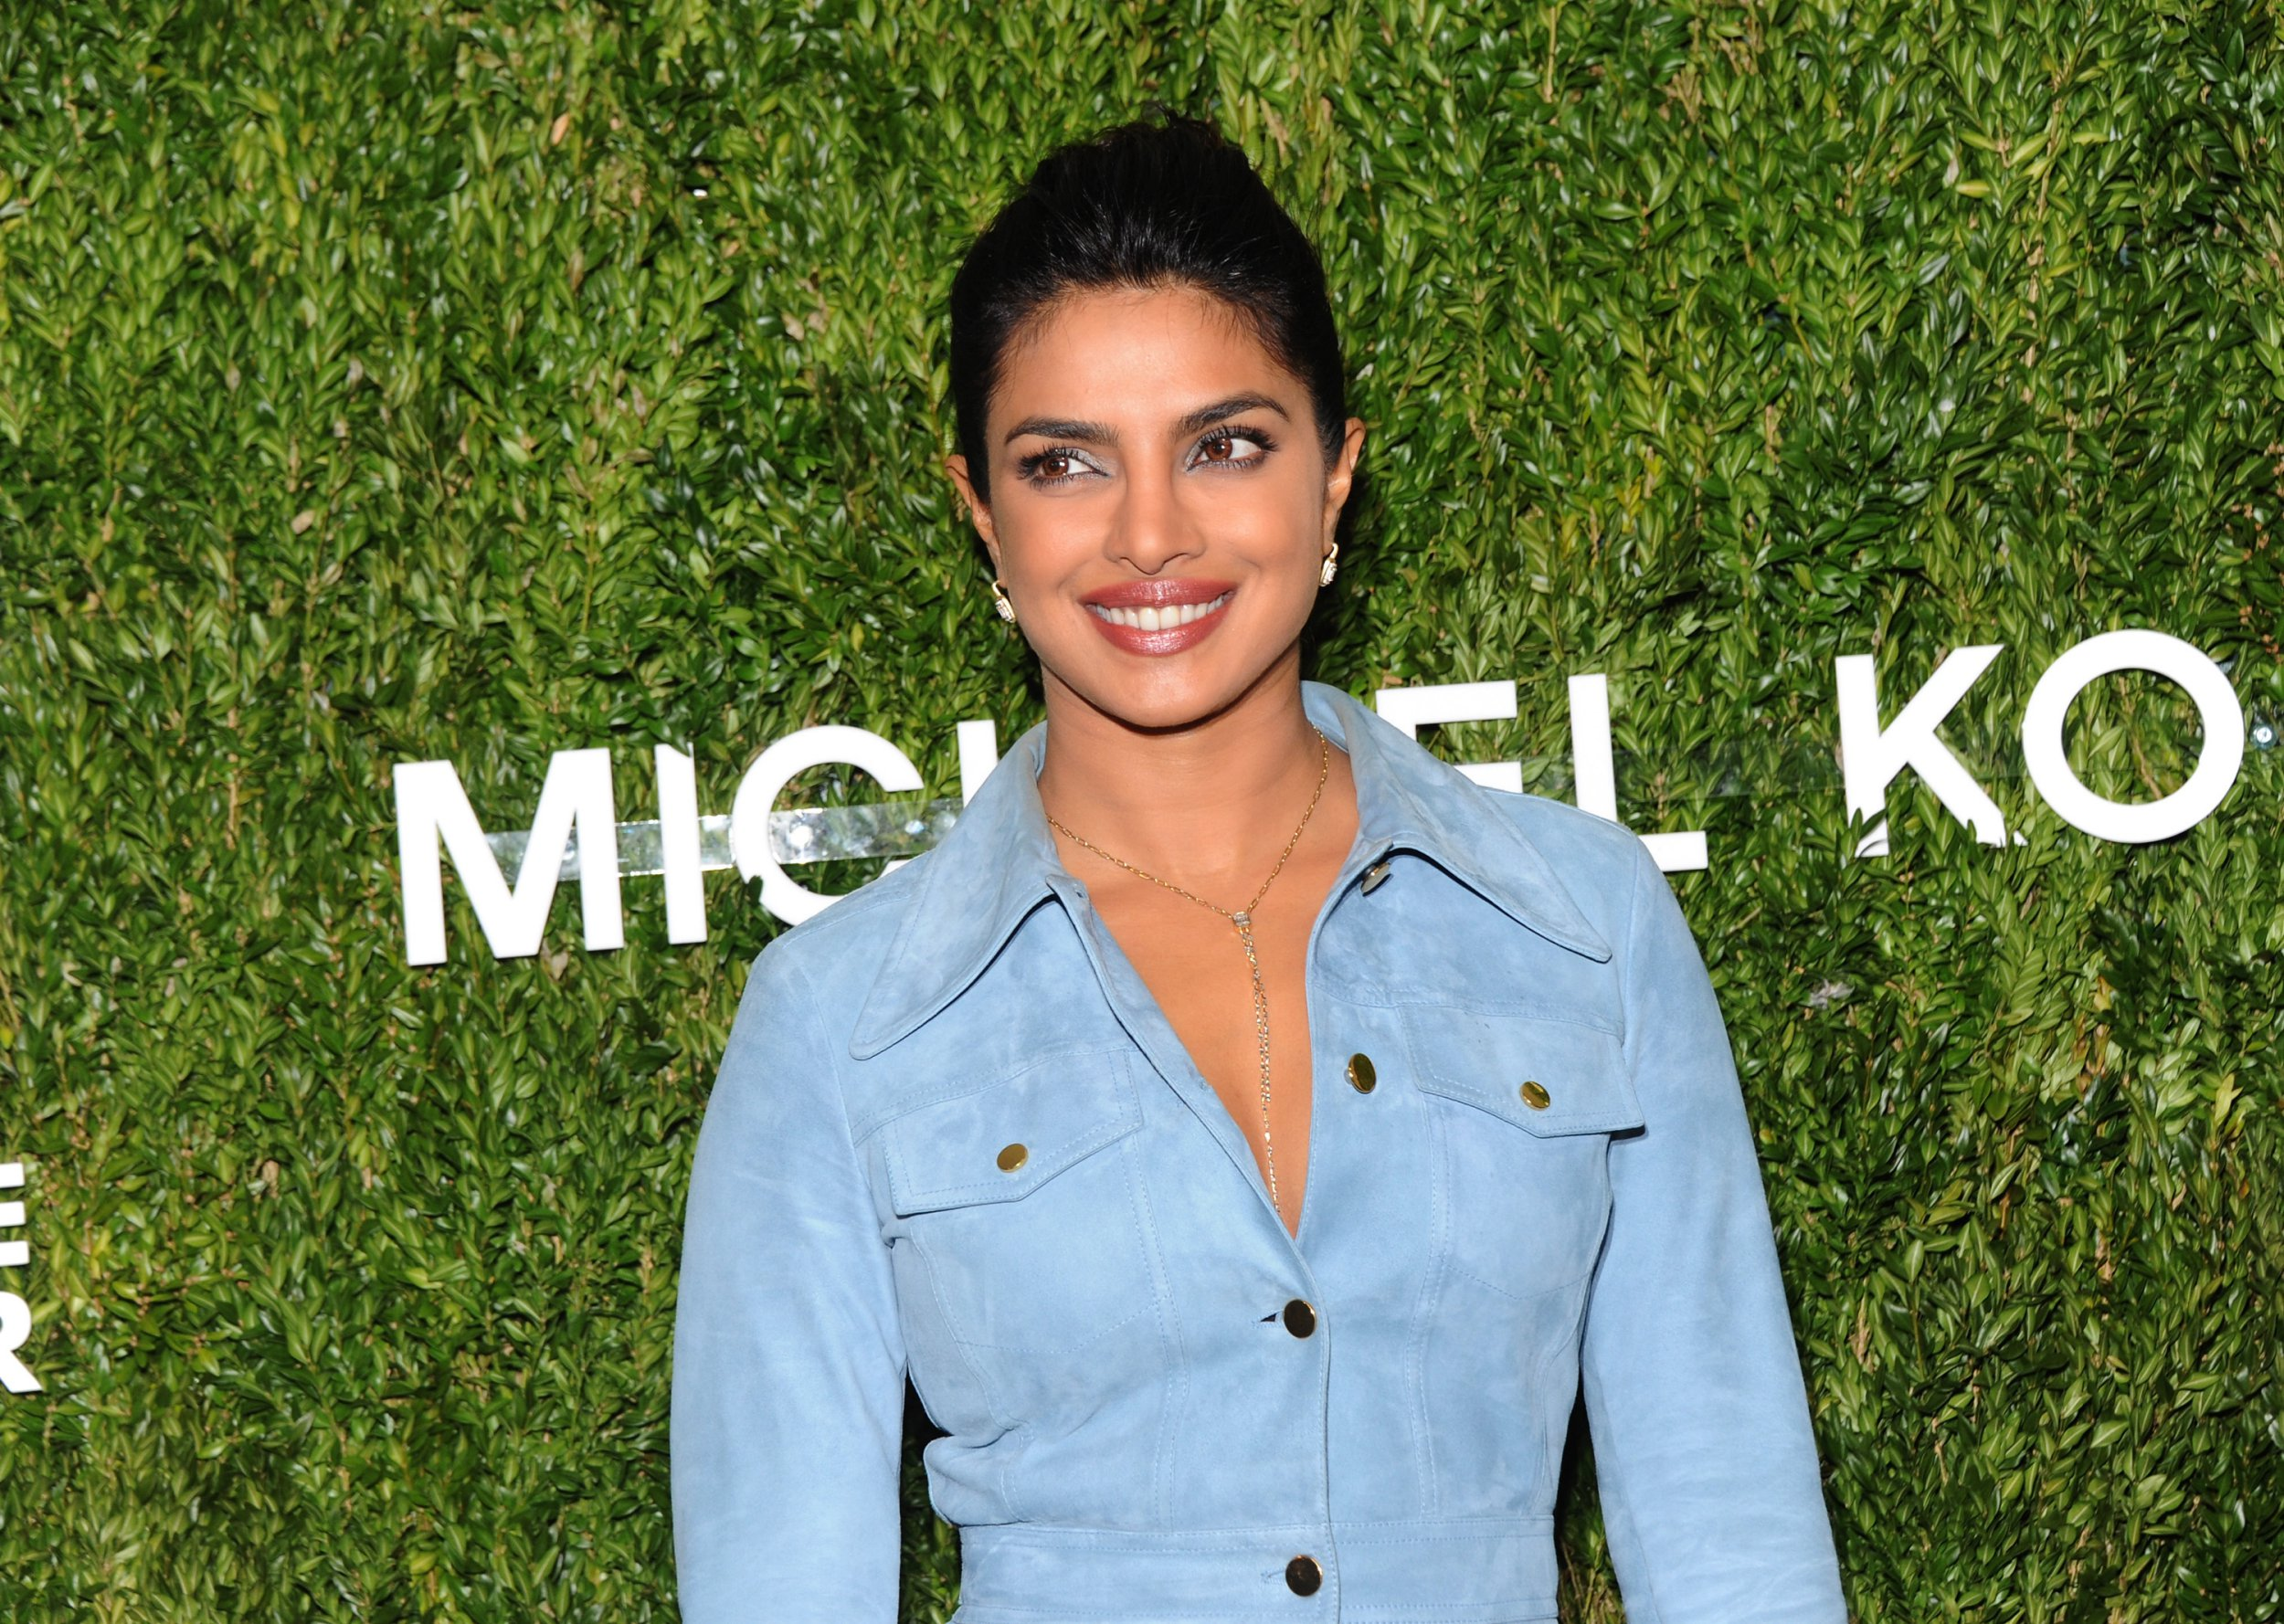 NEW YORK, NY - OCTOBER 16: Priyanka Chopra caters for God's Love We are Delivering the 12th Annual Heart Heart Award at Spring Studios on October 16, 2018 in New York City. (Photo by Desiree Navarro / Getty Images)